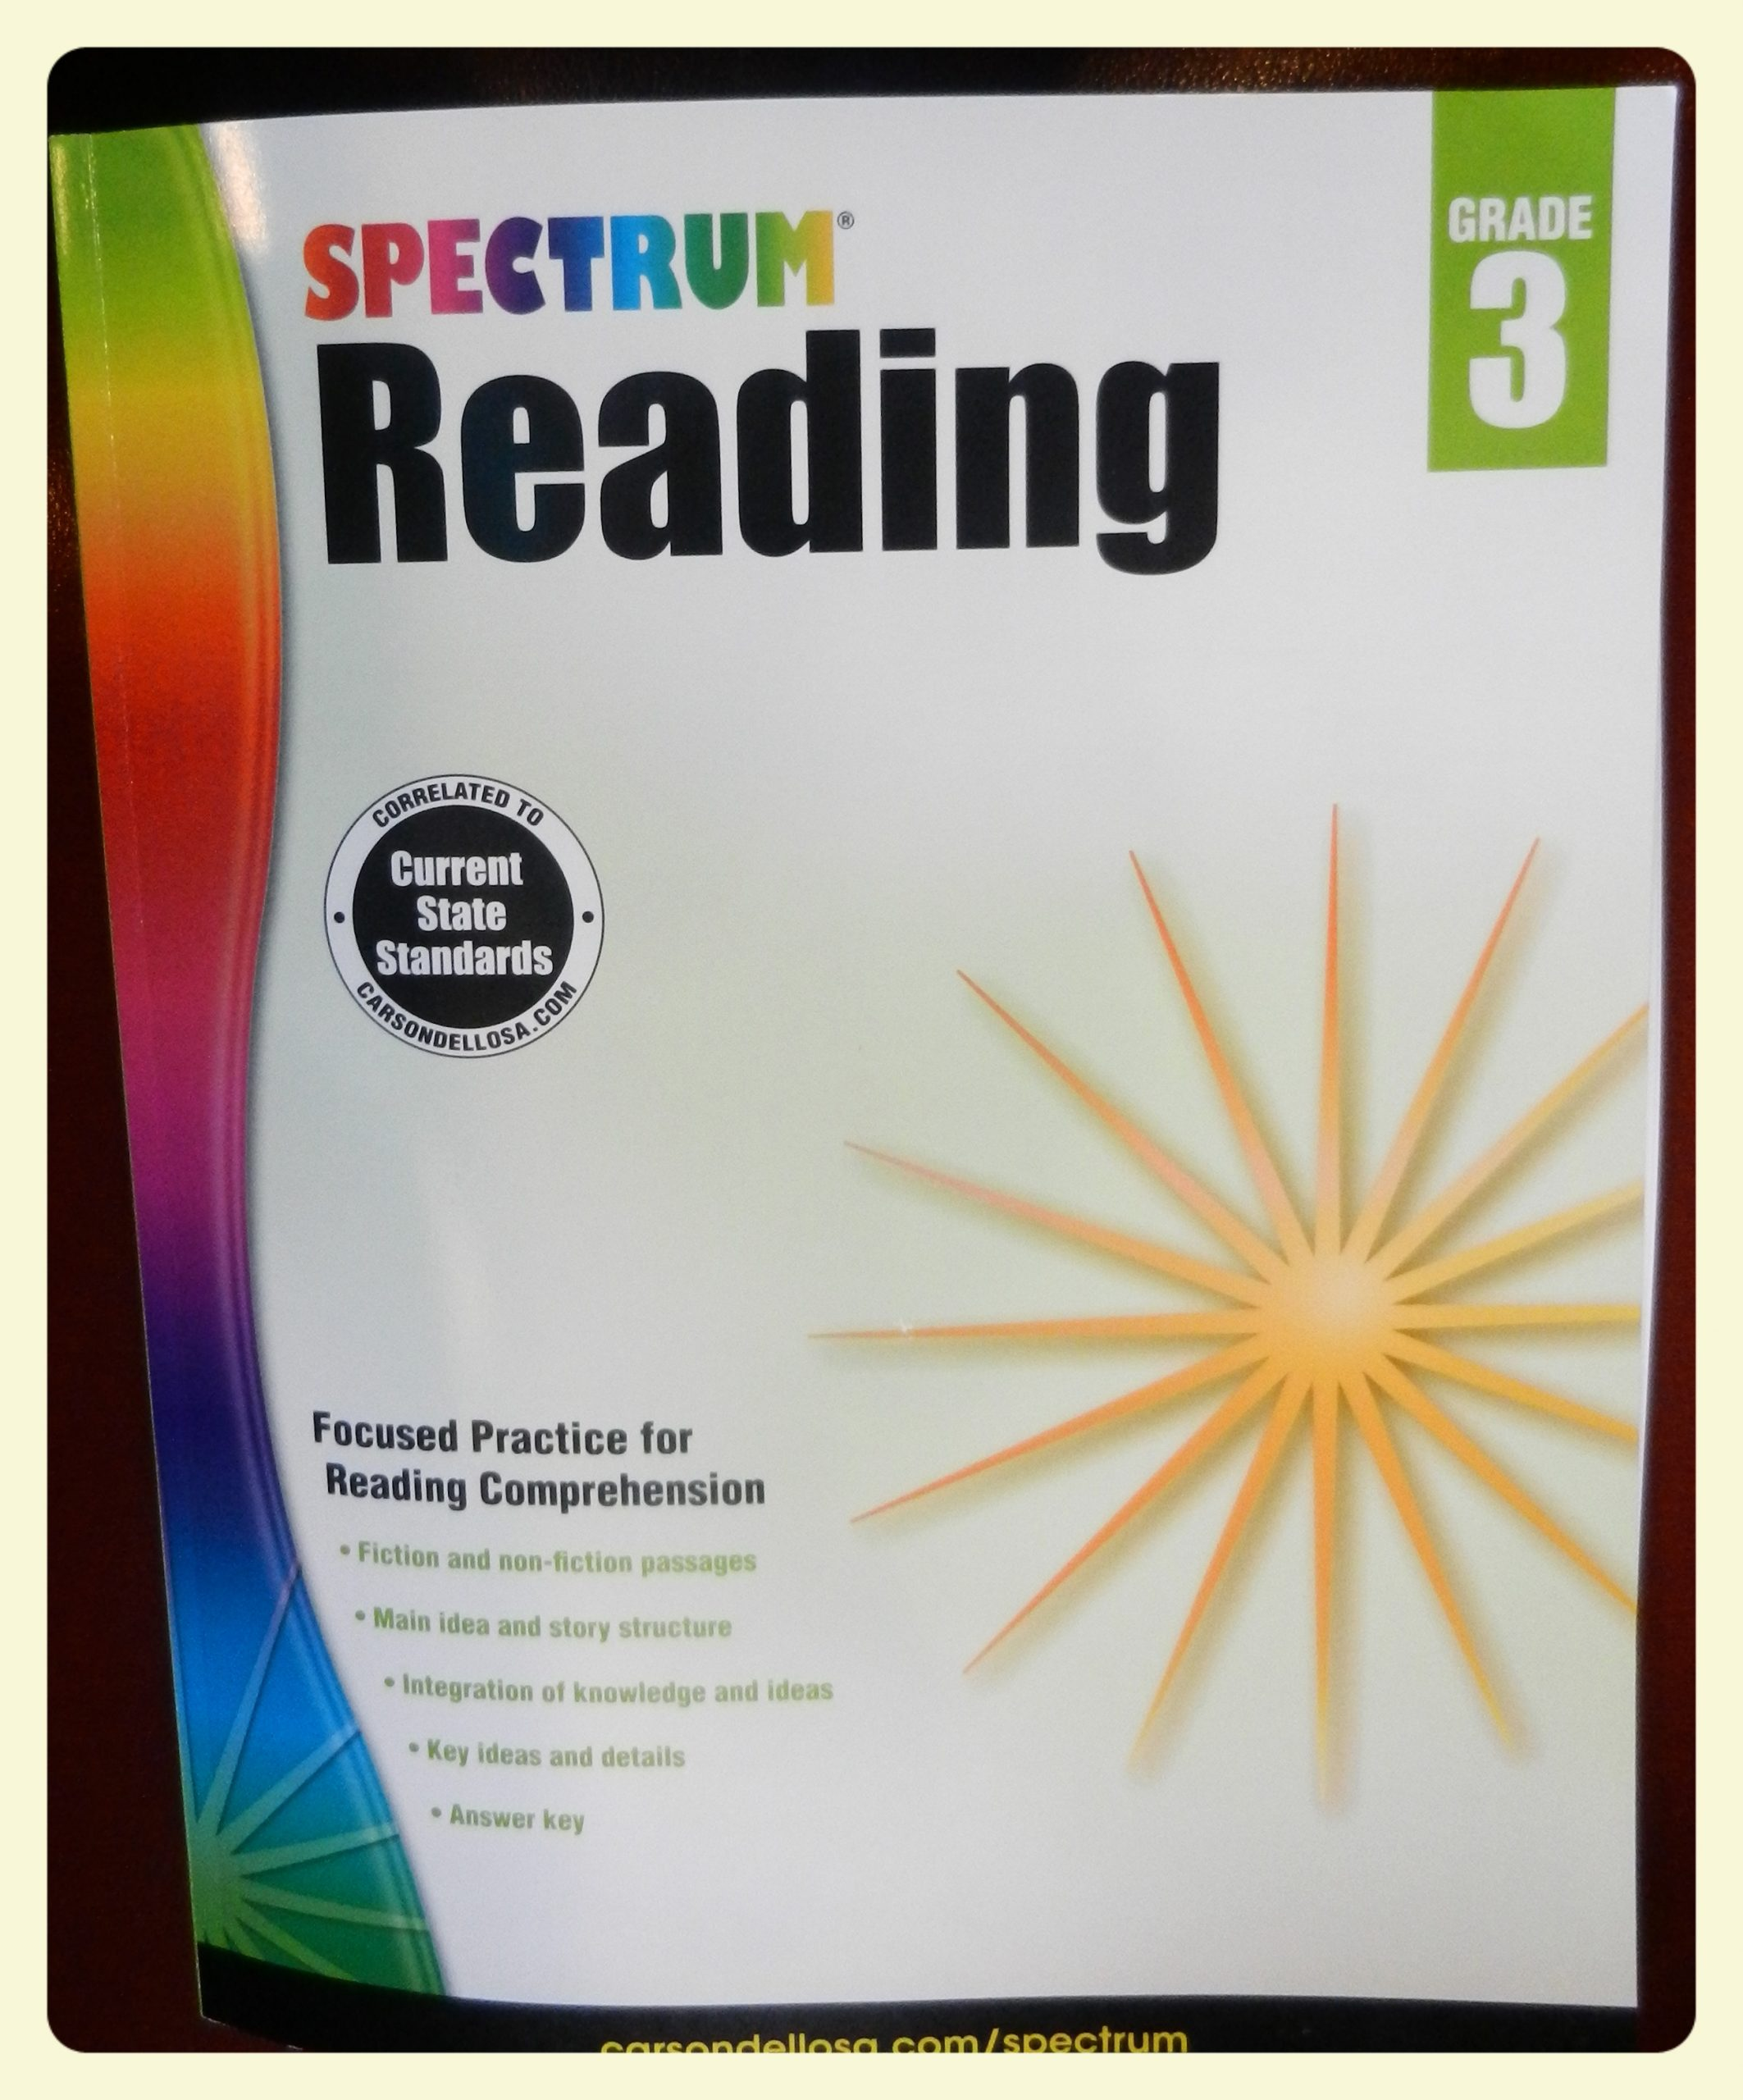 Spectrum Reading Grade 3 My Review The Curriculum Choice